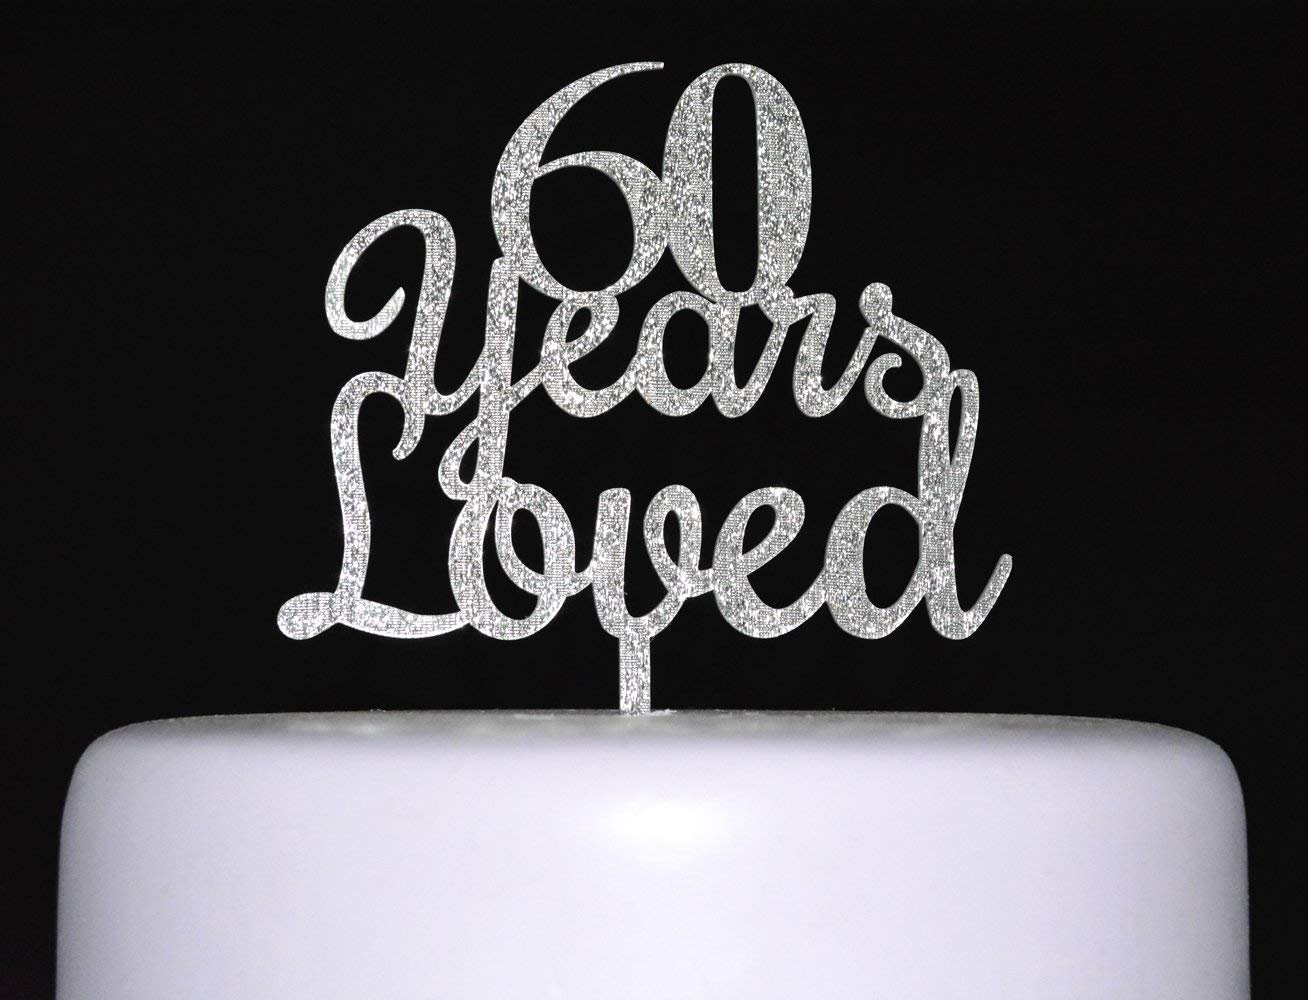 Qttier 70 years loved Happy Birthday Cake Topper 70th Anniversary Party Decoration Premium Quality Acrylic Silver B-P03